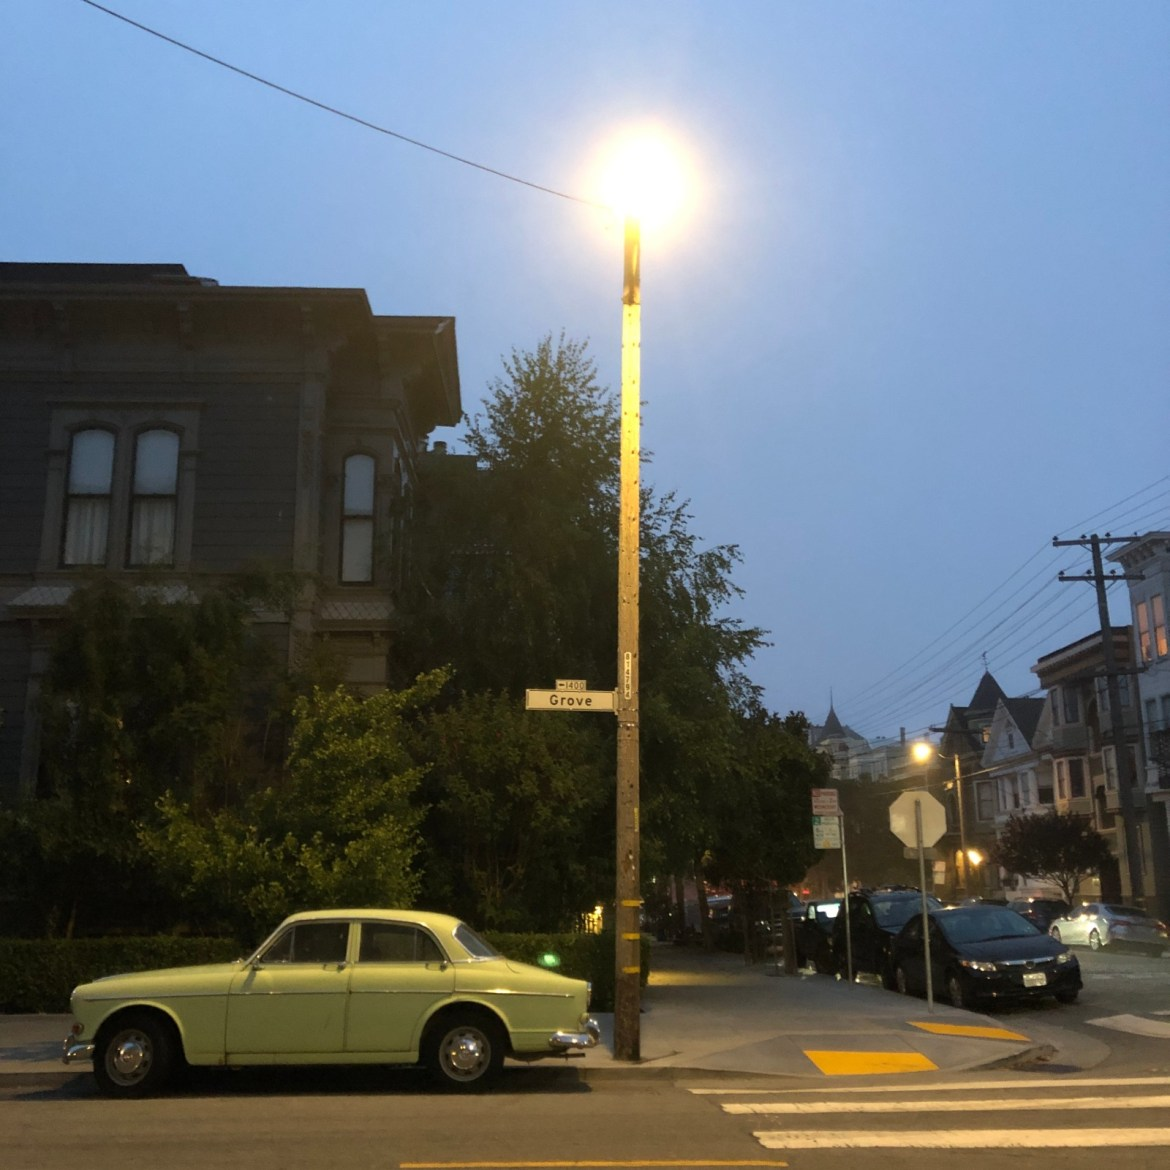 A typical summer evening scene in NoPa (fog)